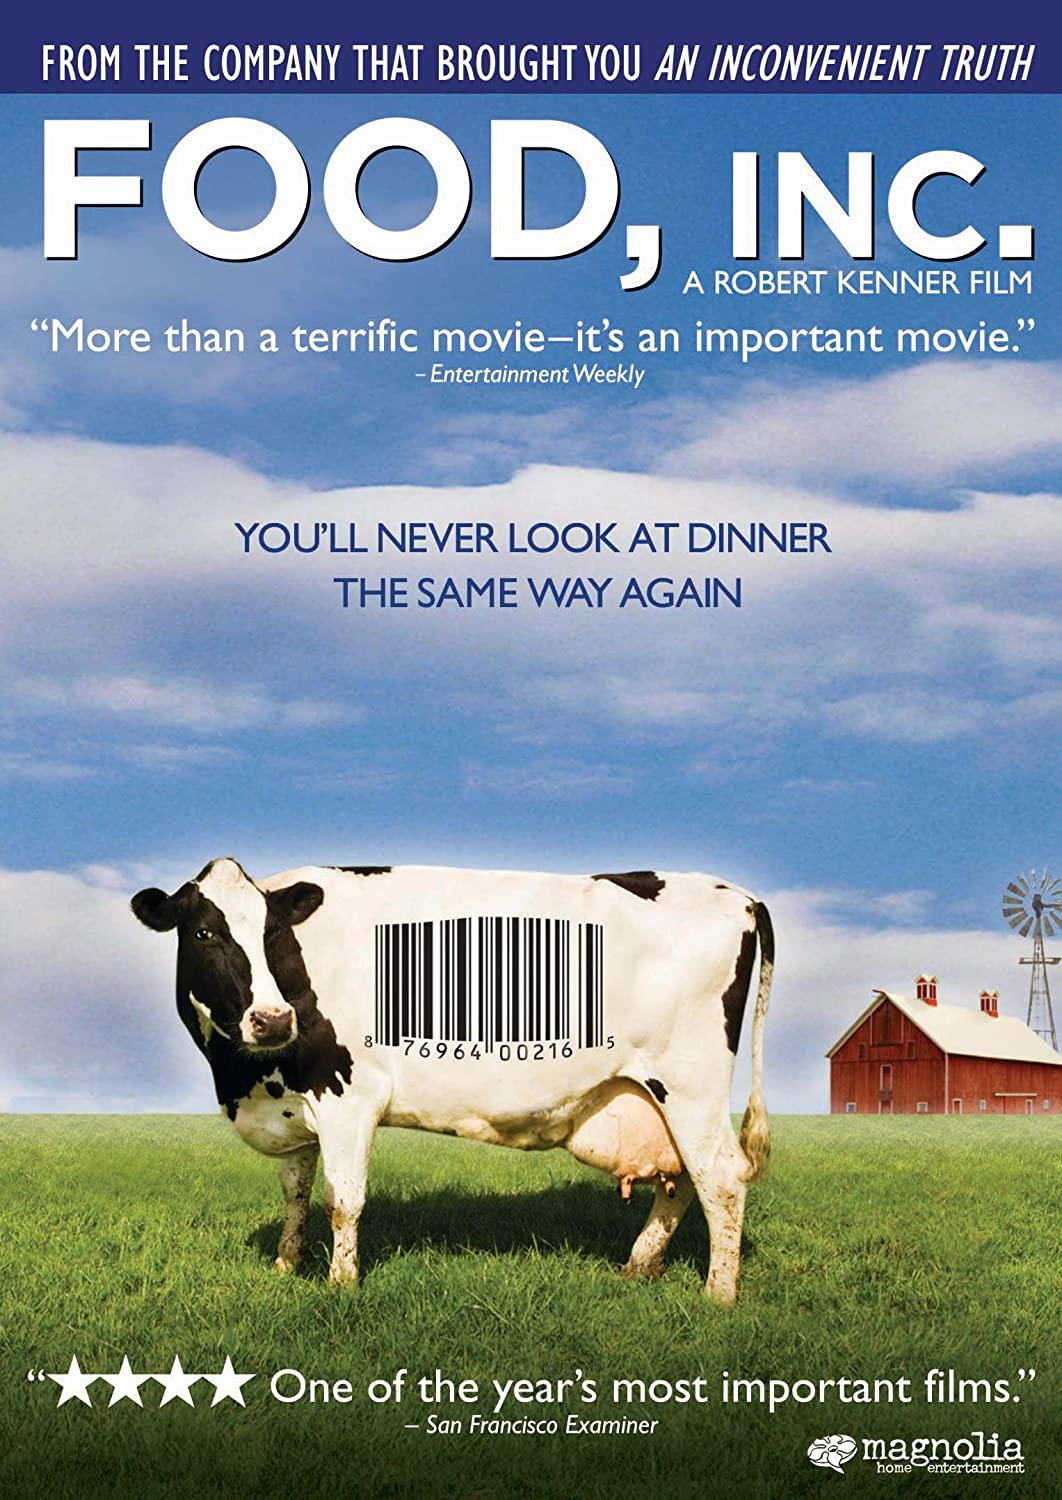 Food, Inc. is one of the most important films about food that you can watch today.